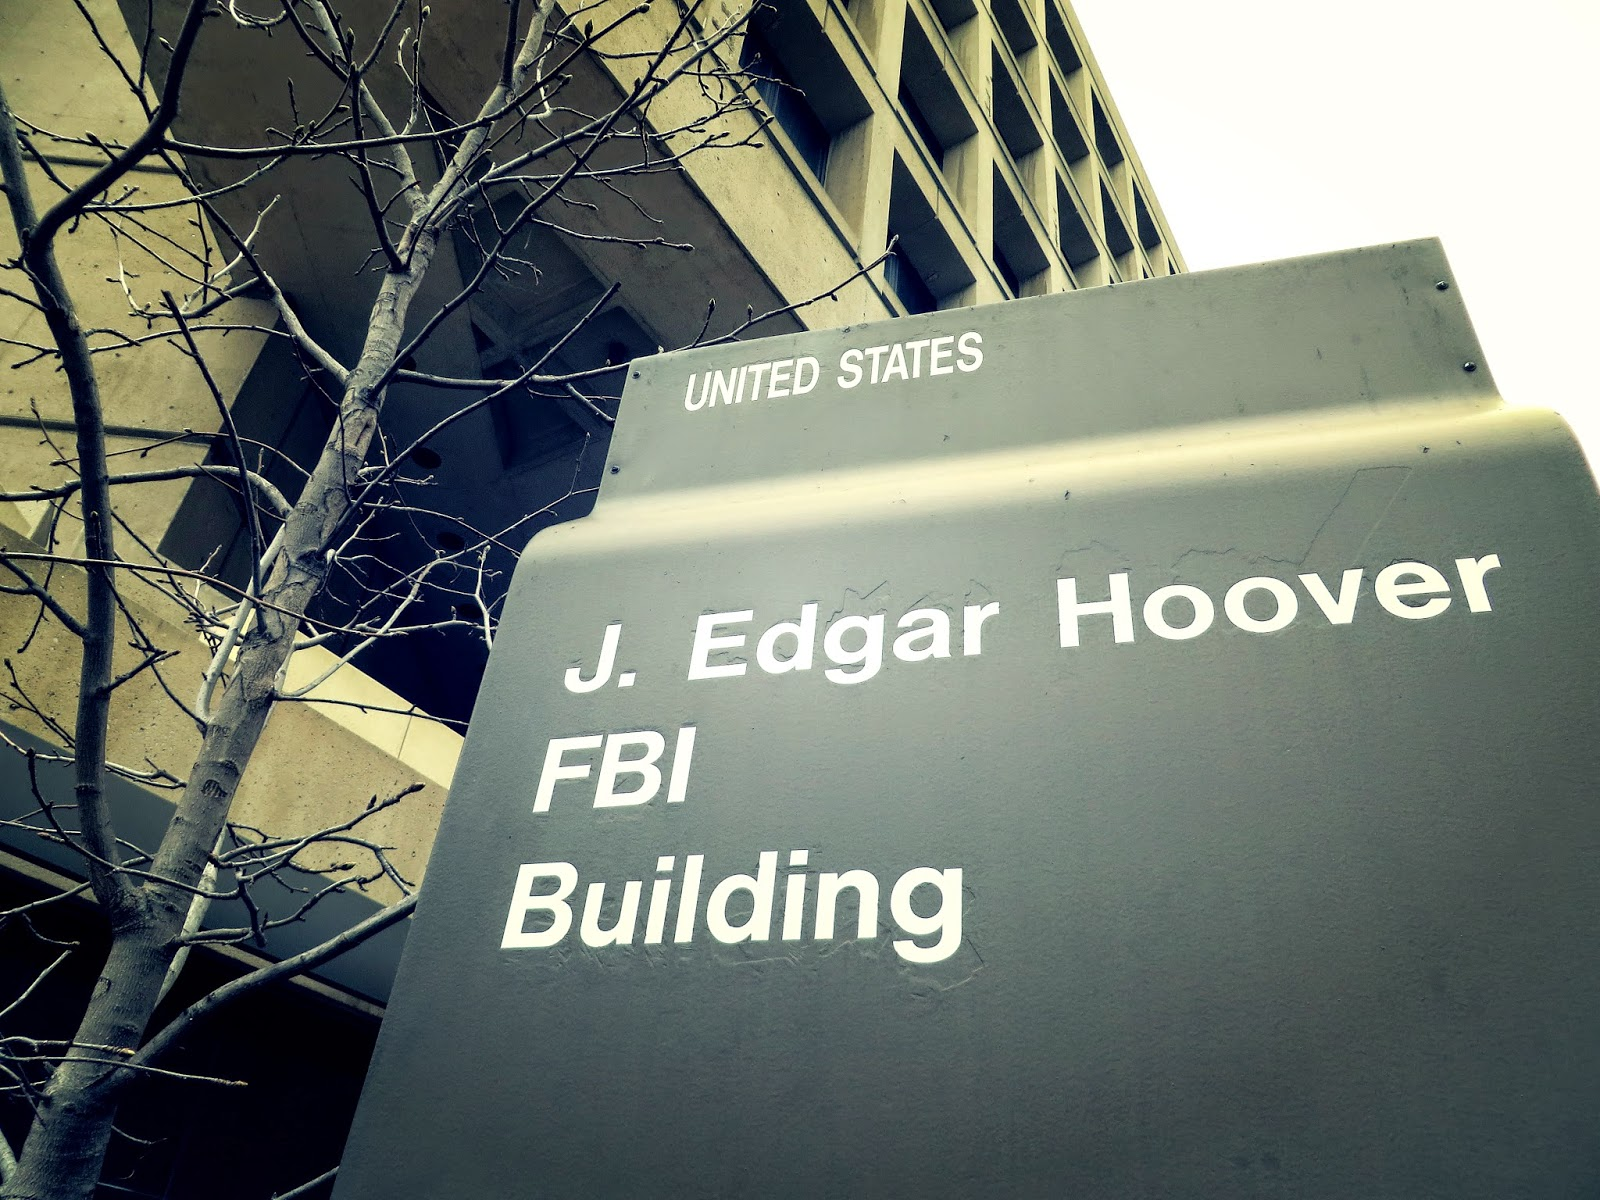 FBI Building in Washington D.C.